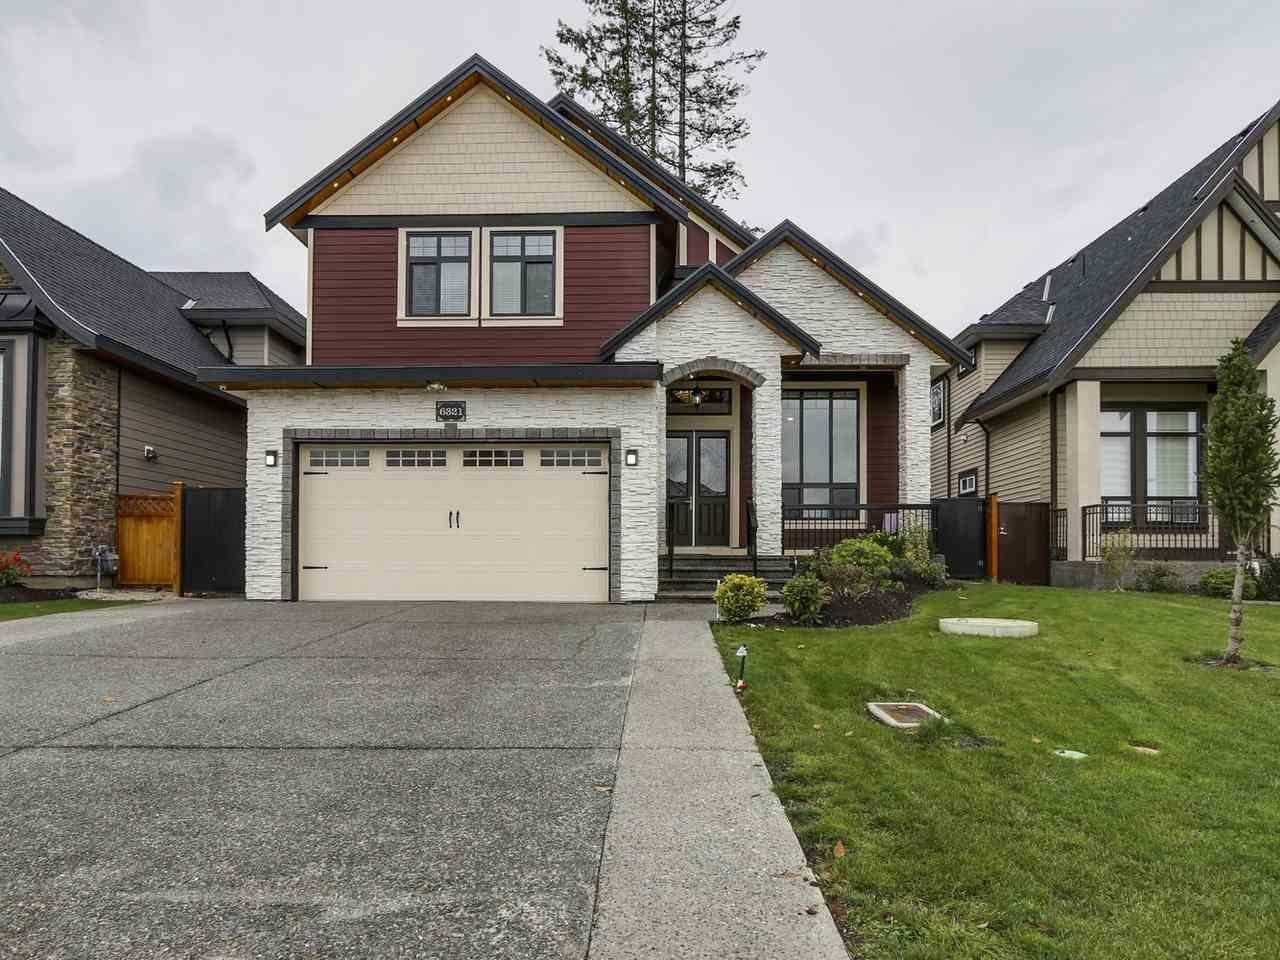 R2121074 - 6321 128A STREET, Panorama Ridge, Surrey, BC - House/Single Family